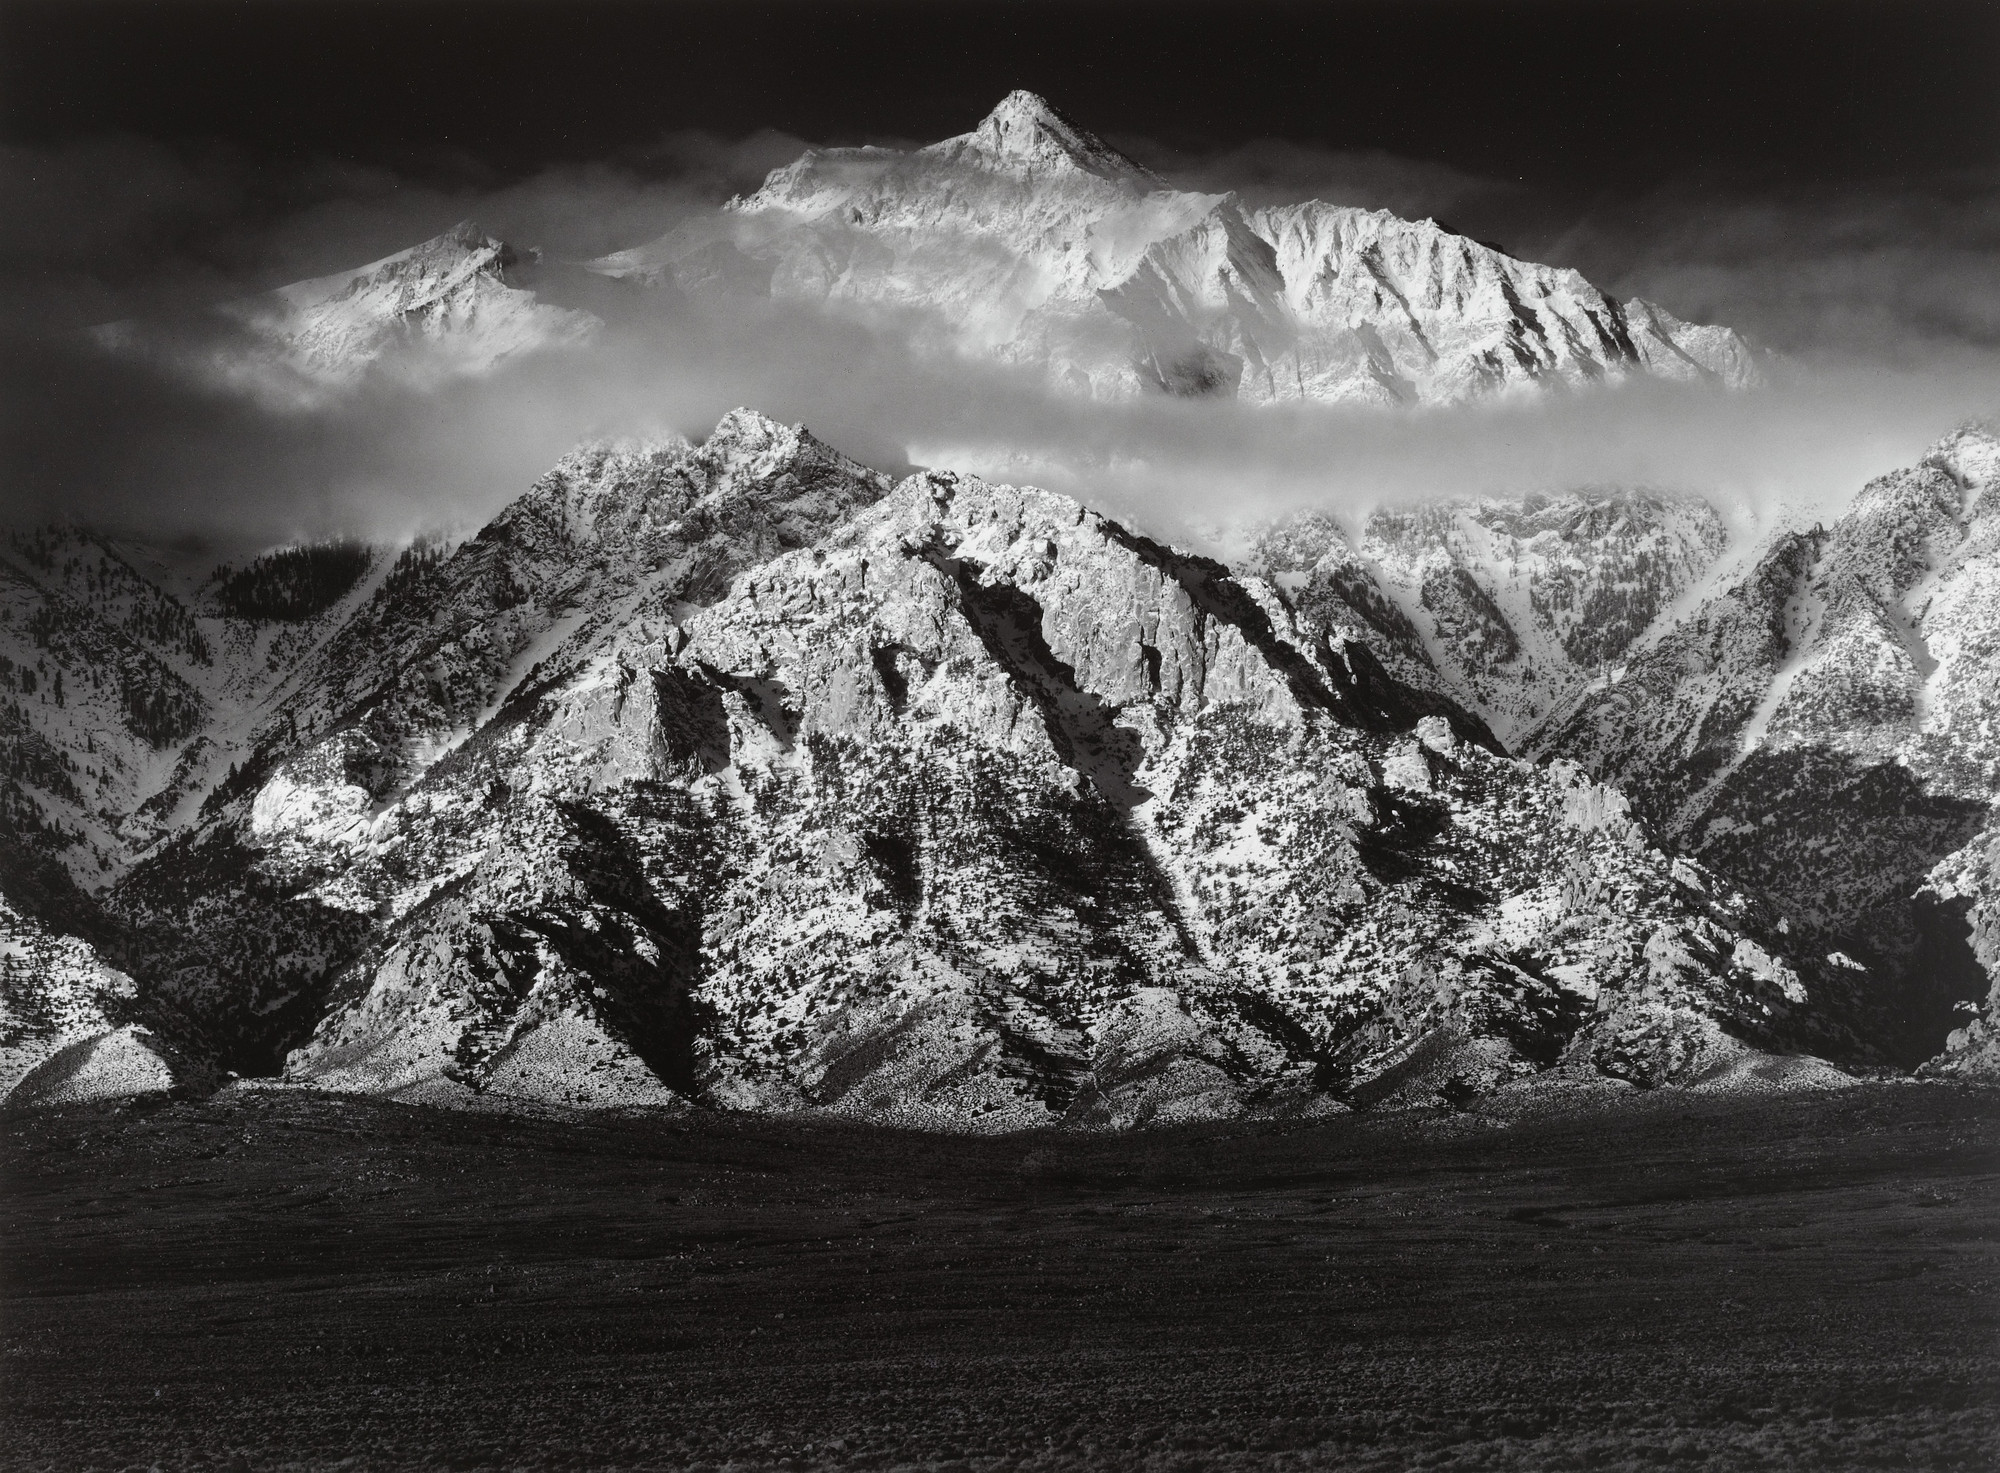 Ansel Adams. Mount Williamson, Sierra Nevada, from the Owens Valley, California. 1944